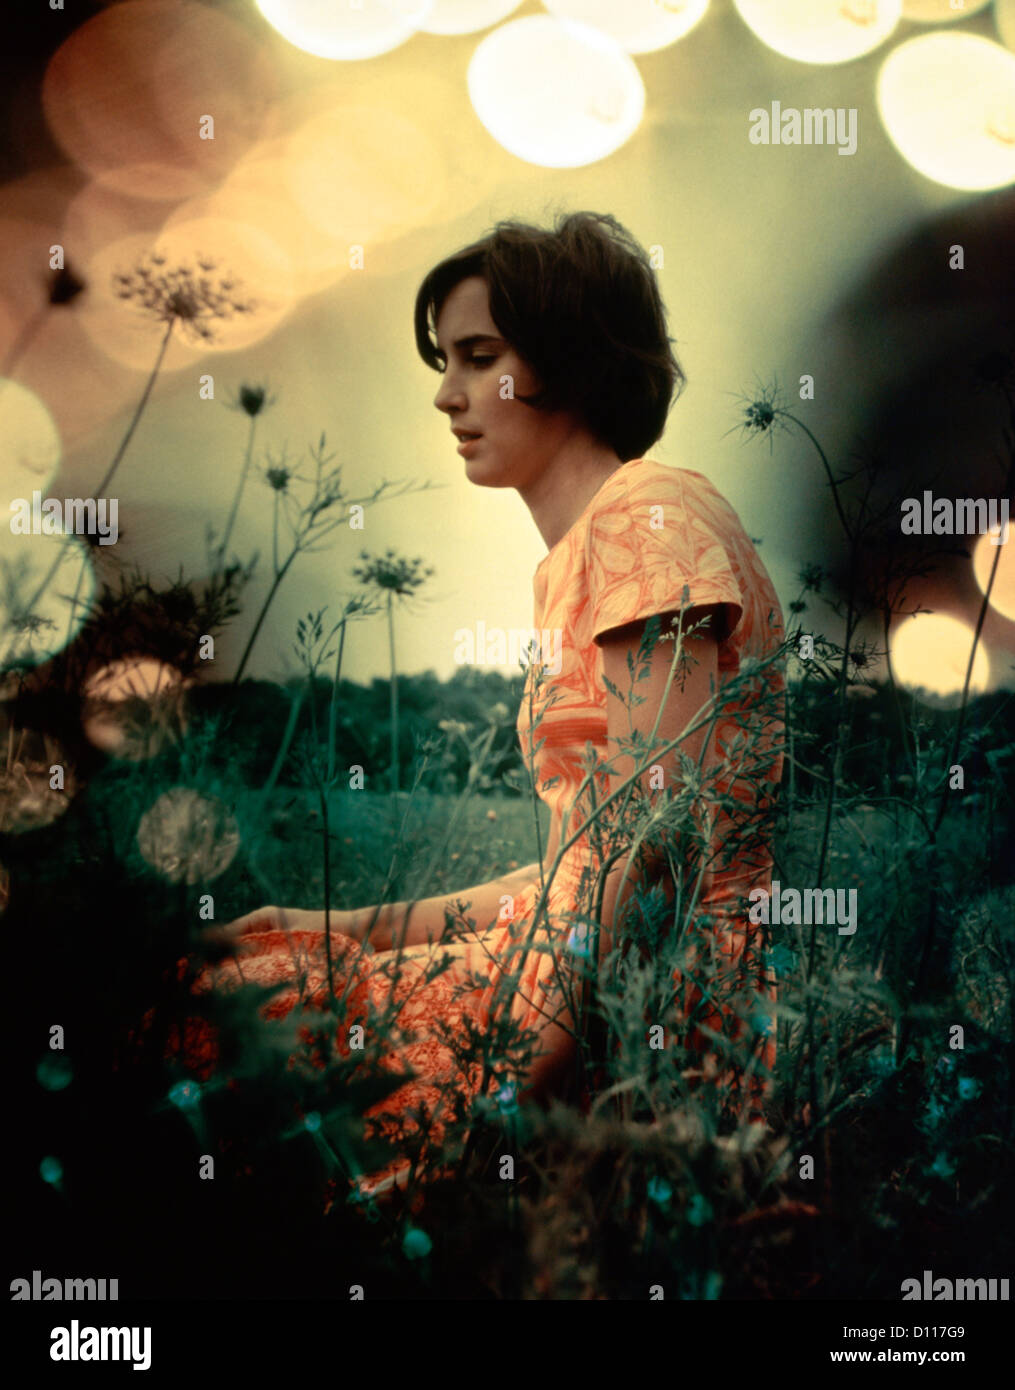 1970s SERIOUS WOMAN IN FIELD FLOWERS WITH SOFT FOCUS SPECIAL EFFECT - Stock Image